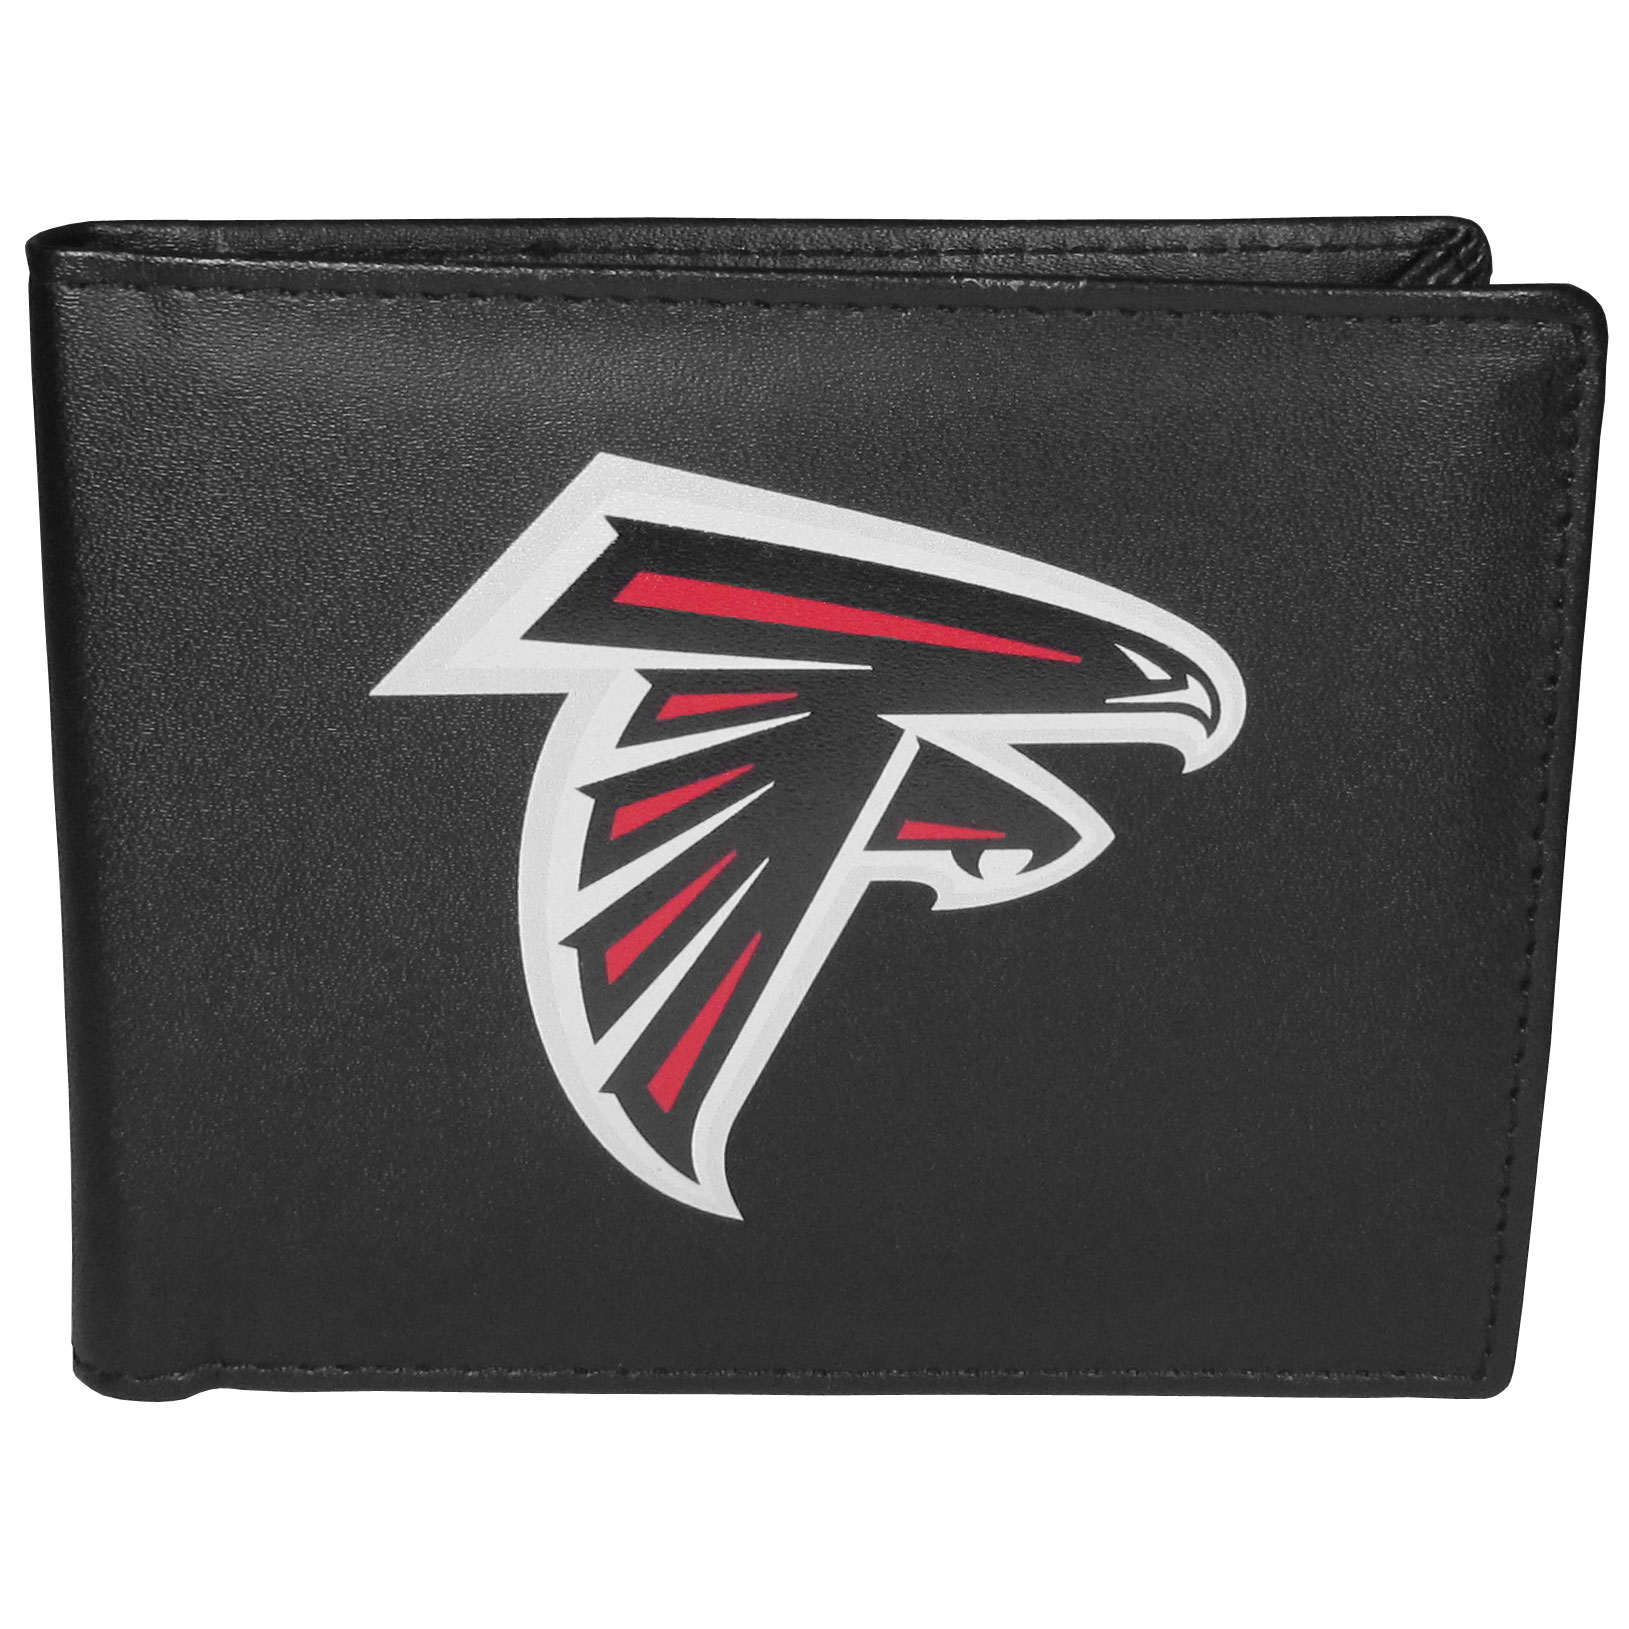 Atlanta Falcons Leather Bi-fold Wallet, Large Logo - Our classic fine leather bi-fold wallet is meticulously crafted with genuine leather that will age beautifully so you will have a quality wallet for years to come. The wallet opens to a large, billfold pocket and numerous credit card slots and has a convenient windowed ID slot. The front of the wallet features an extra large Atlanta Falcons printed logo.